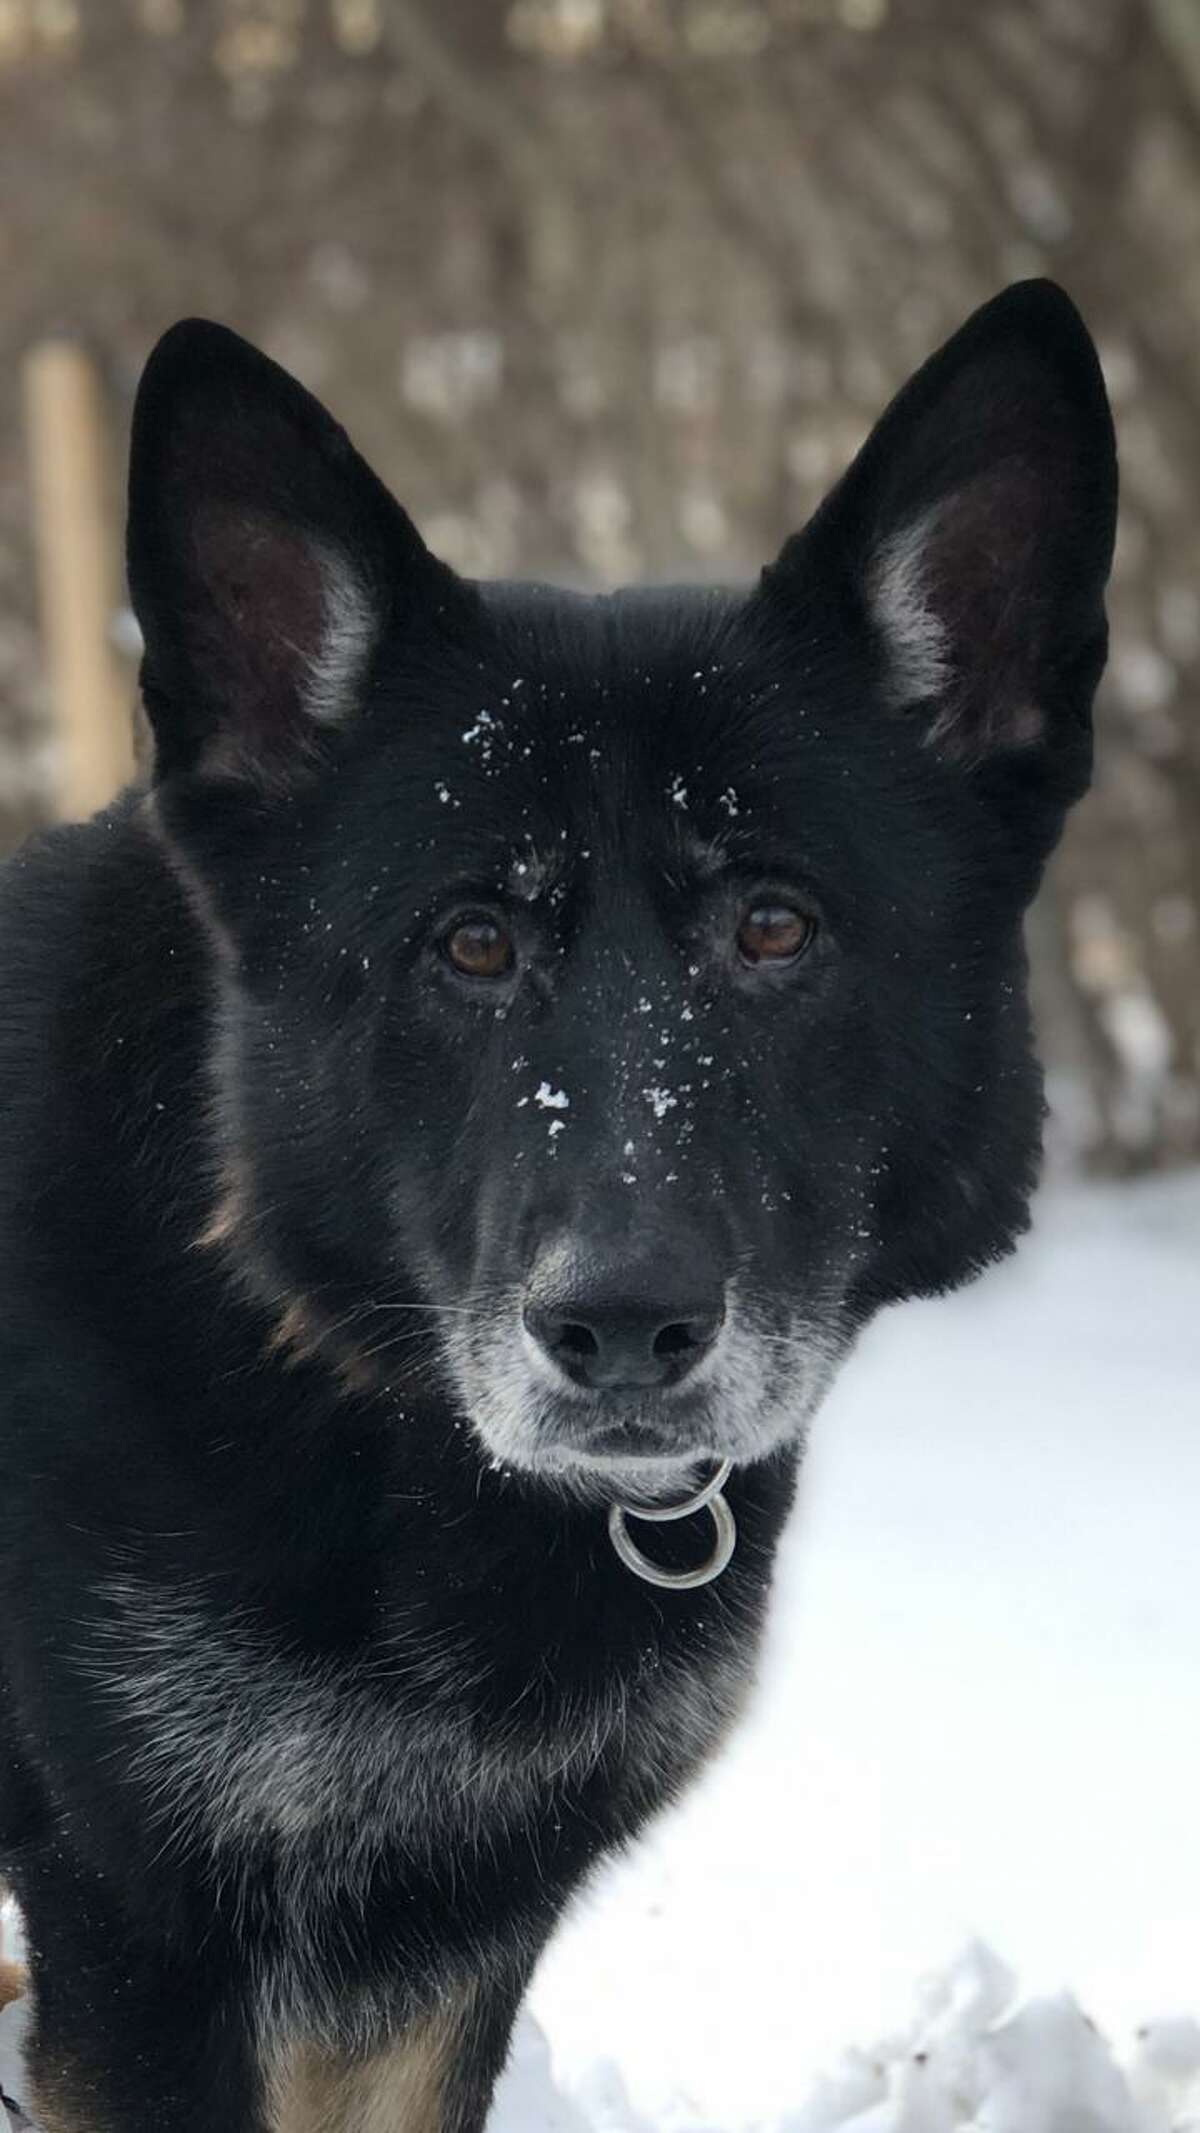 After a decade of service, the New Milford Police Department will say good-bye to retiring K-9 Kira.